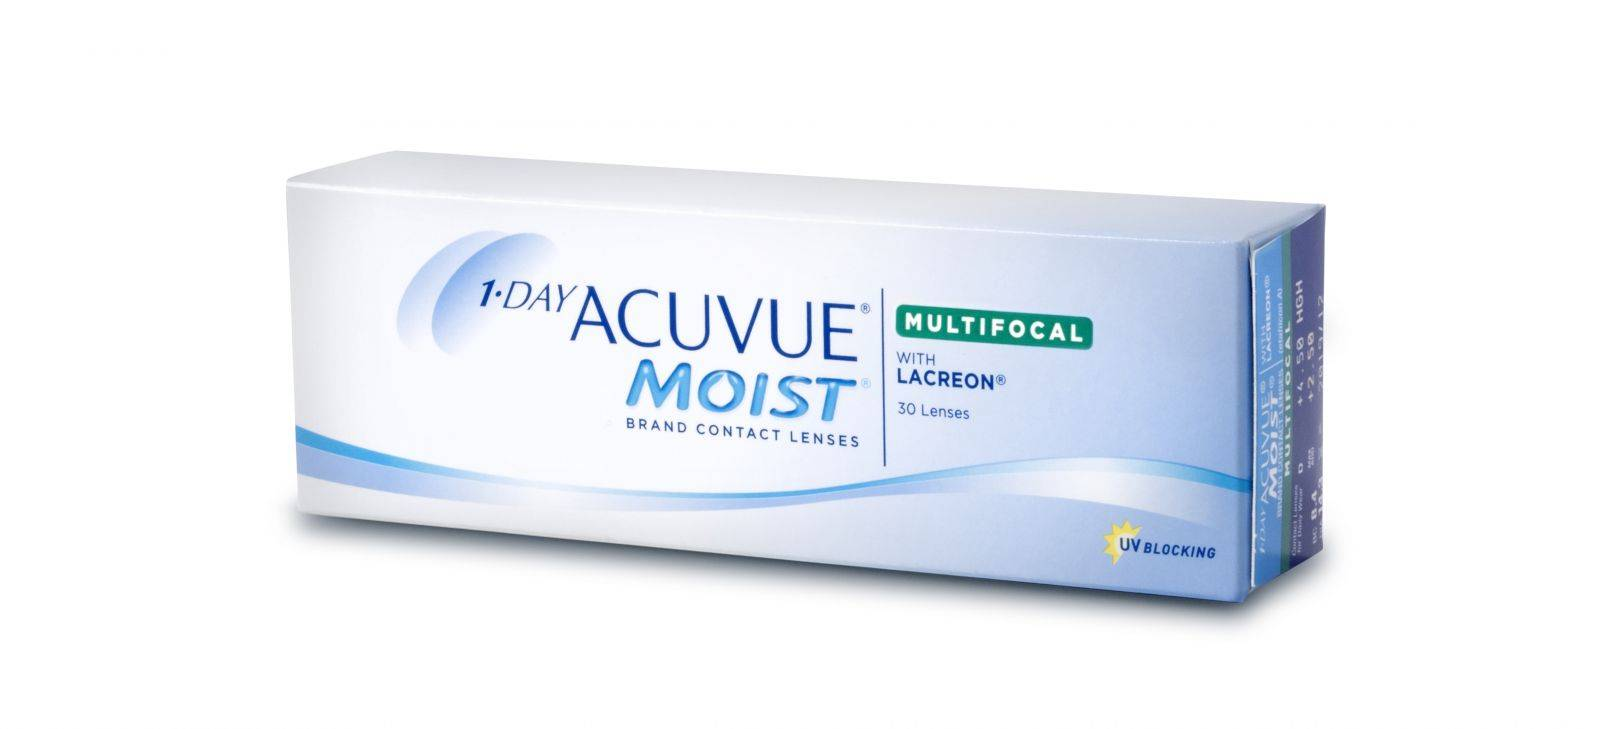 1day_acuvue_moist_multifocal_pic